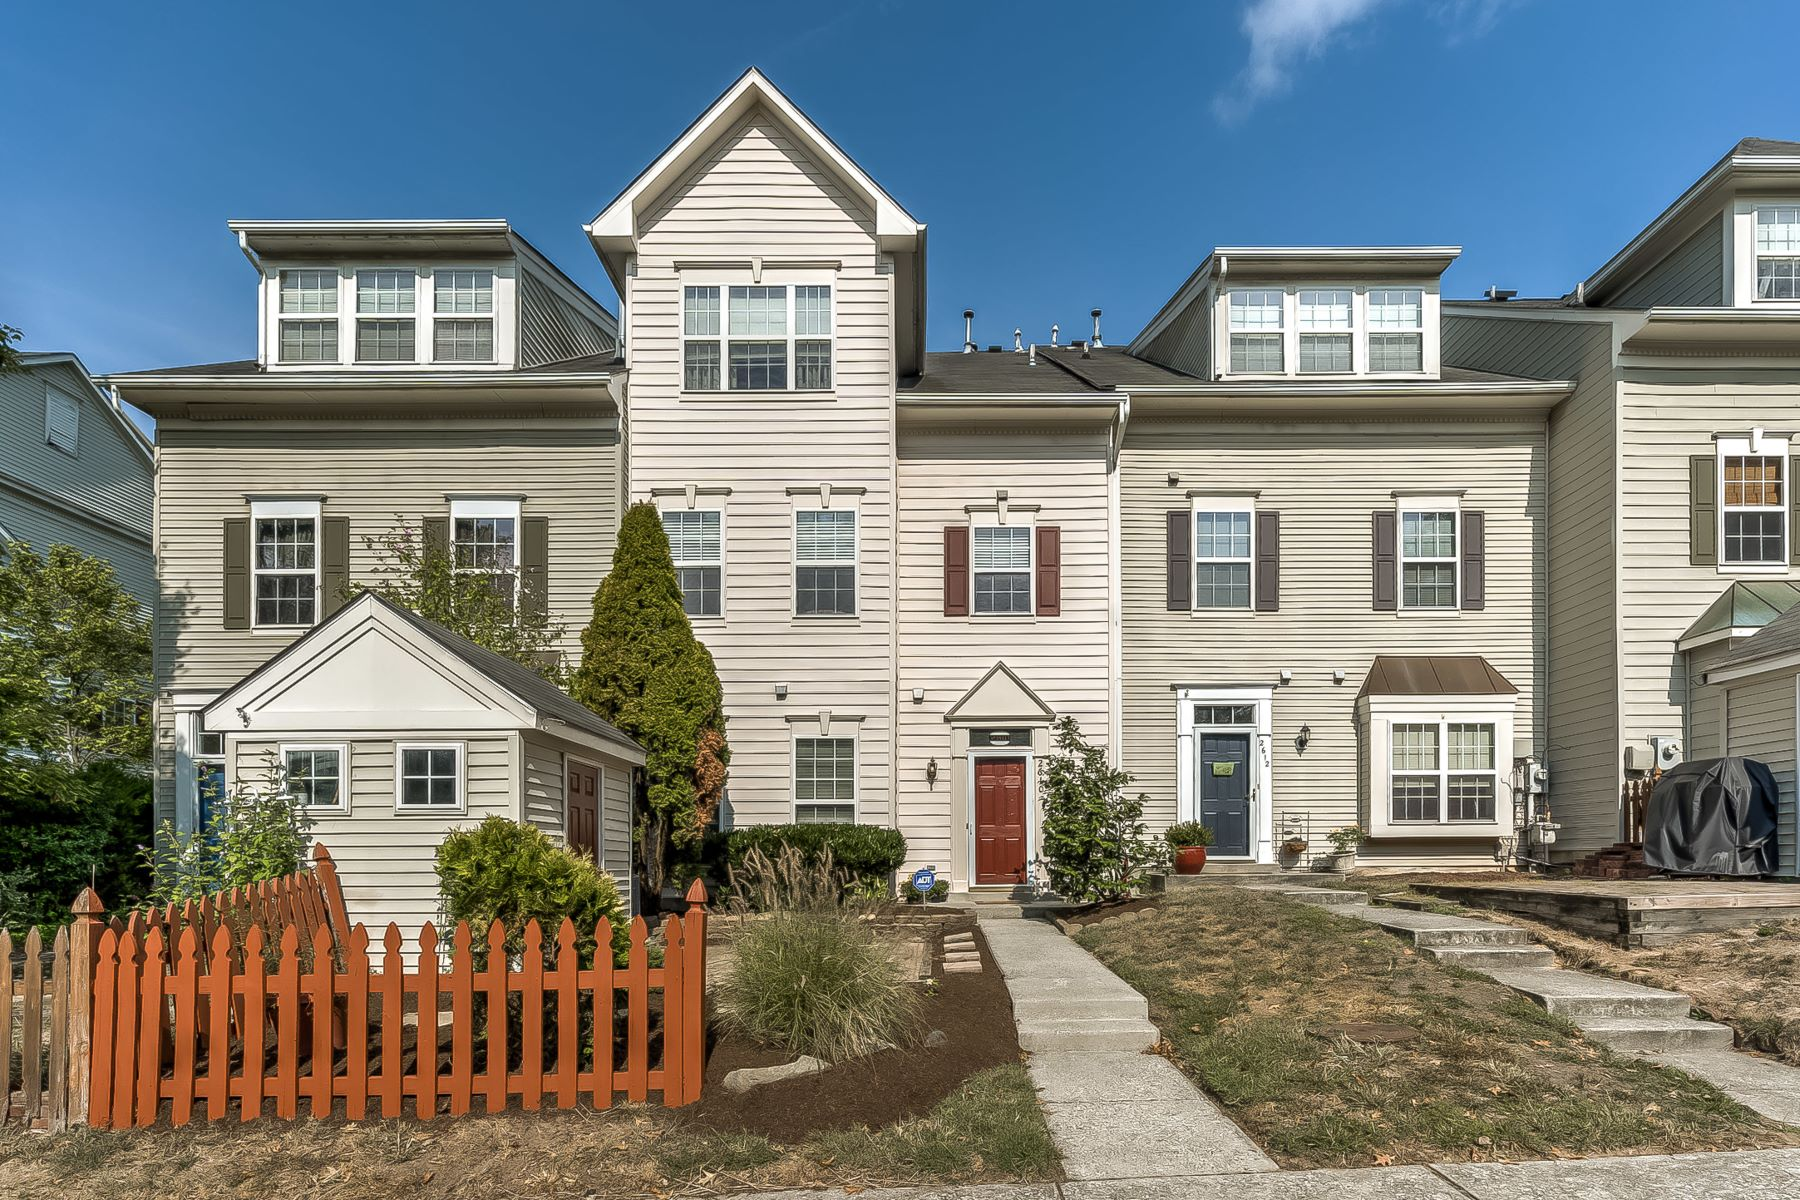 Single Family Homes for Sale at Perfectly Situated in Burgundy Place 2610 Chancellor Court Odenton, Maryland 21113 United States